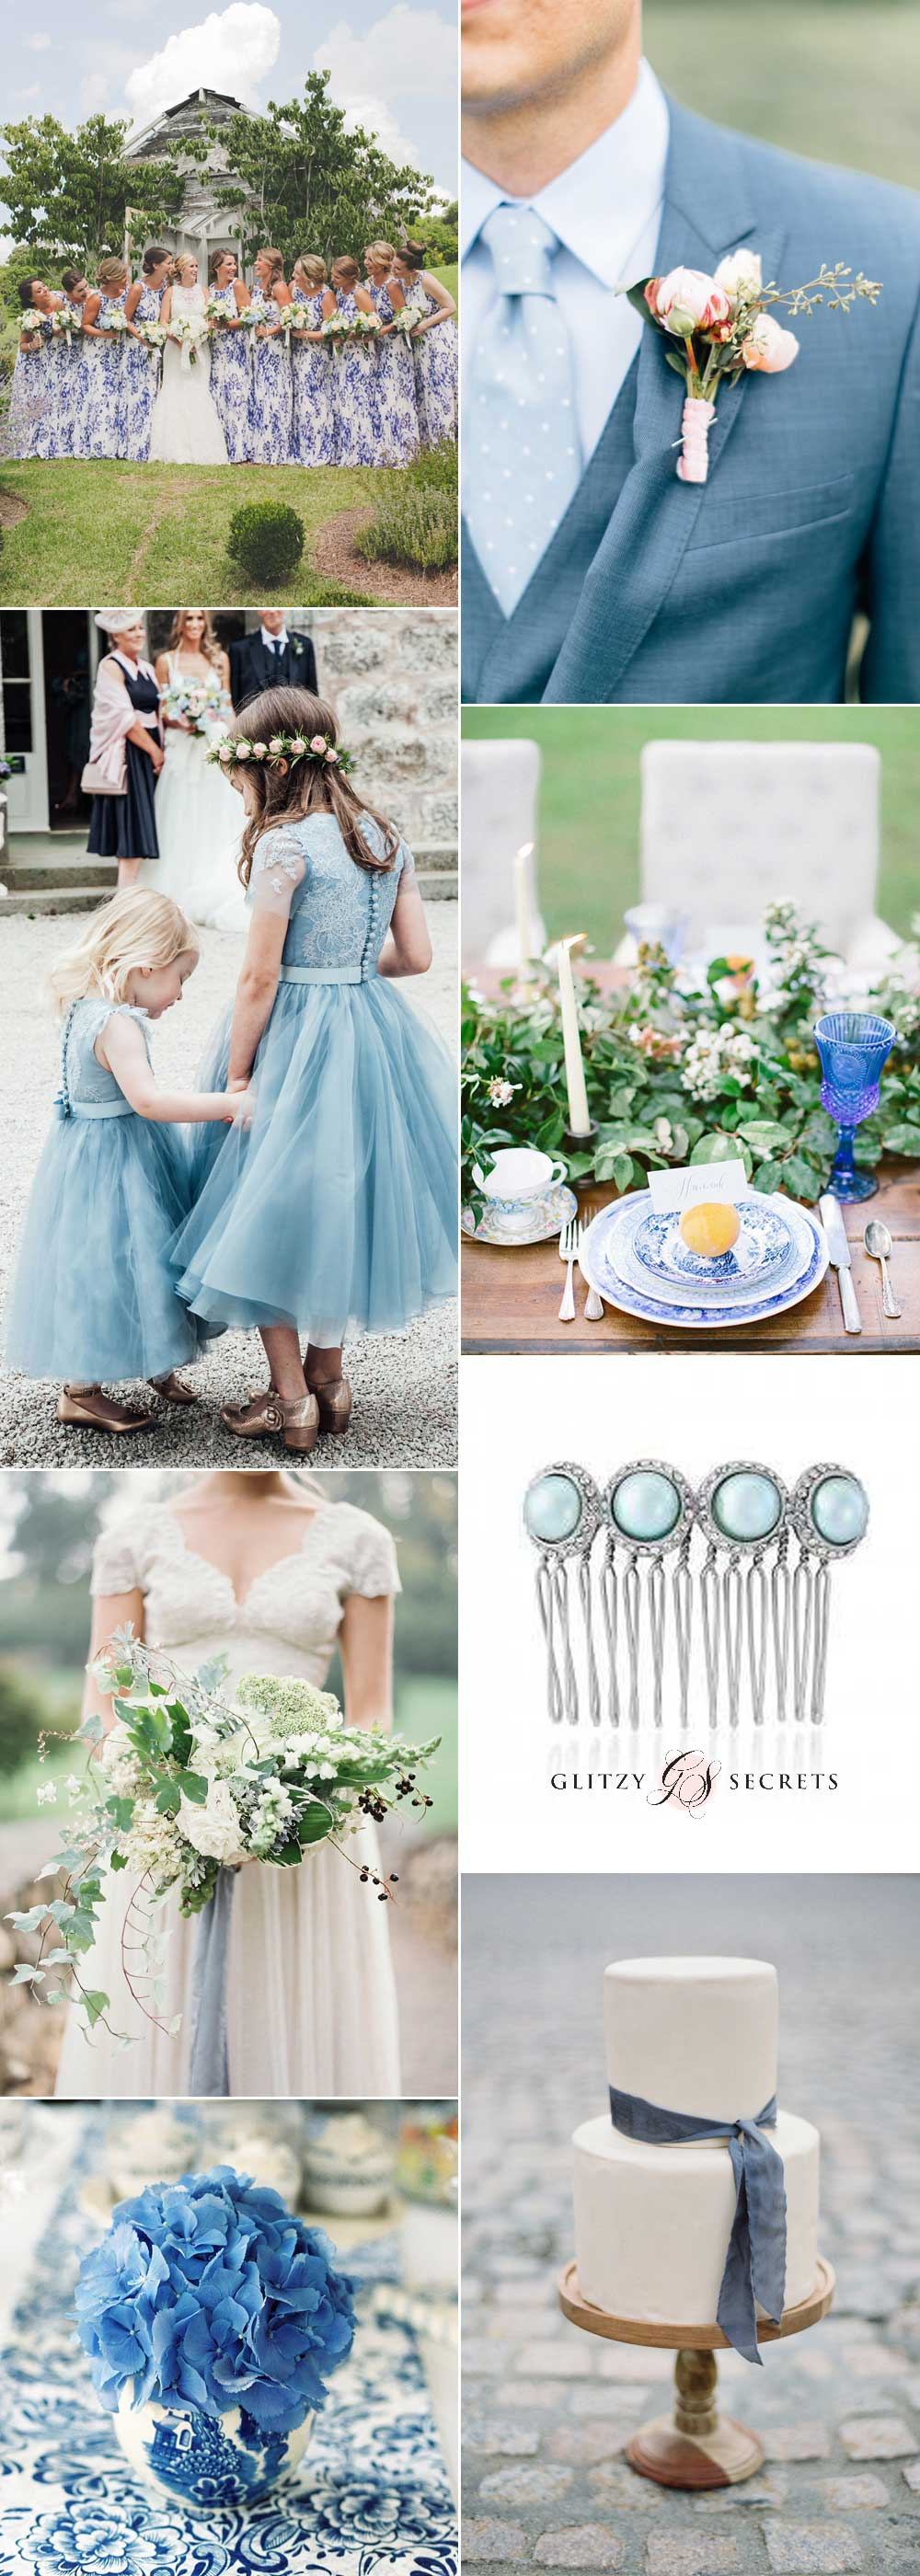 shades of blue for autumn wedding